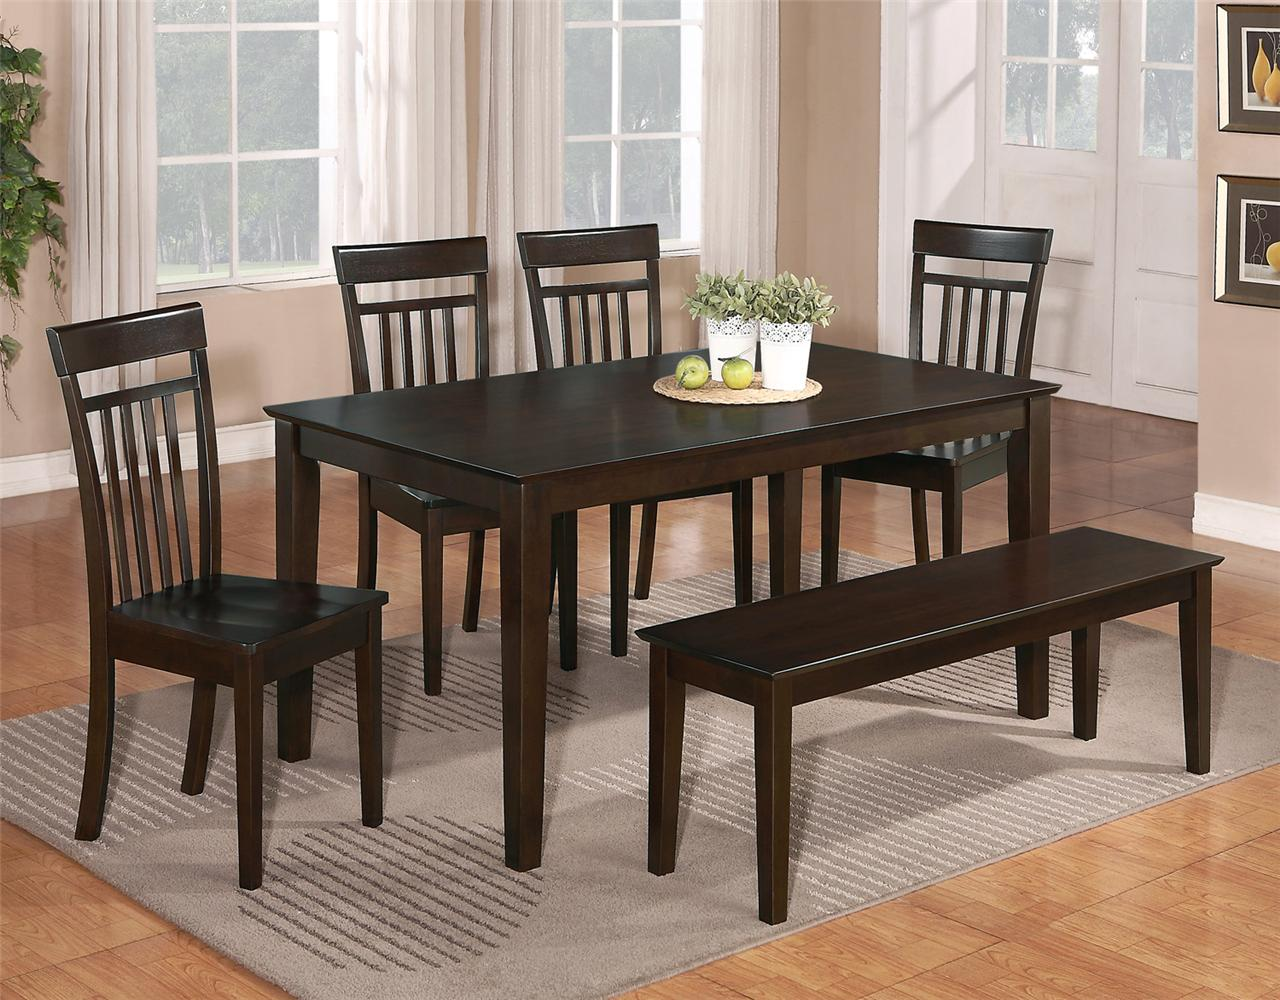 6 pc dinette kitchen dining room set table w 4 wood chair for Dining room sets 4 chairs